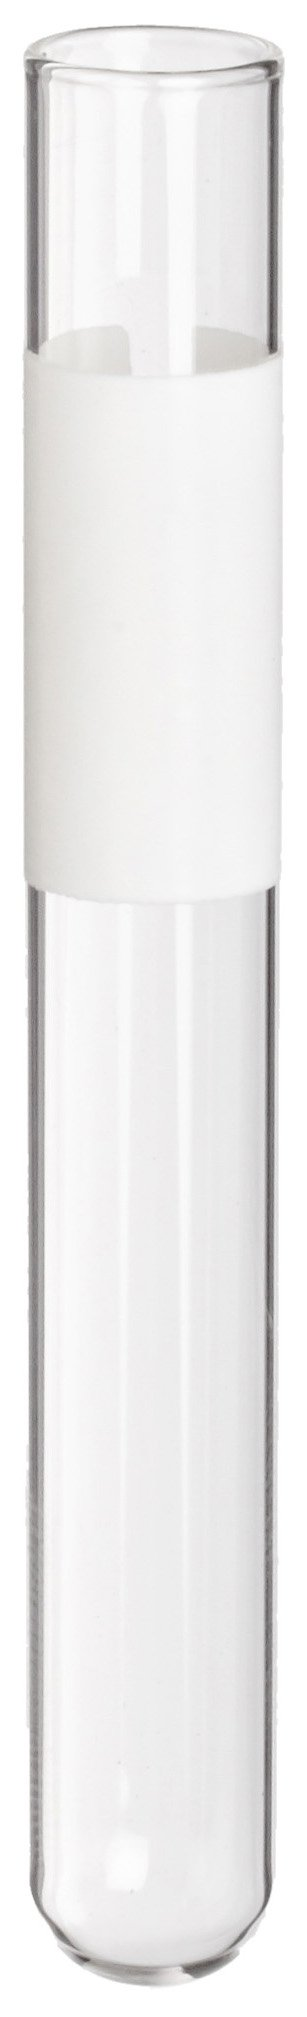 Kimble 10BZXW Borosilicate Glass Mark-M Disposable Culture/Test Tube, with Banded White Label (Case of 1000)